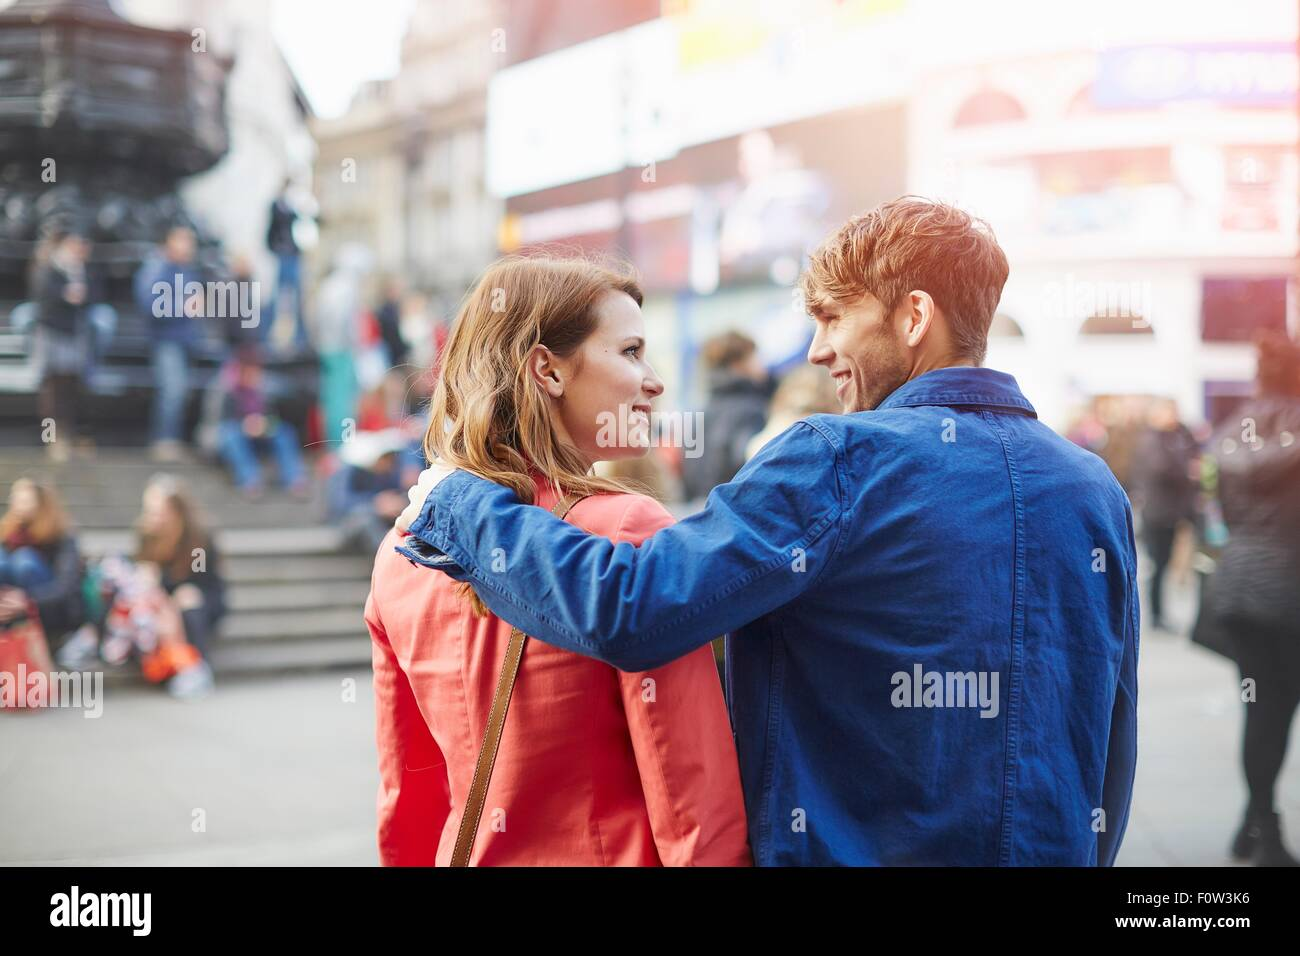 Tourist couple strolling at Piccadilly Circus, London, UK - Stock Image